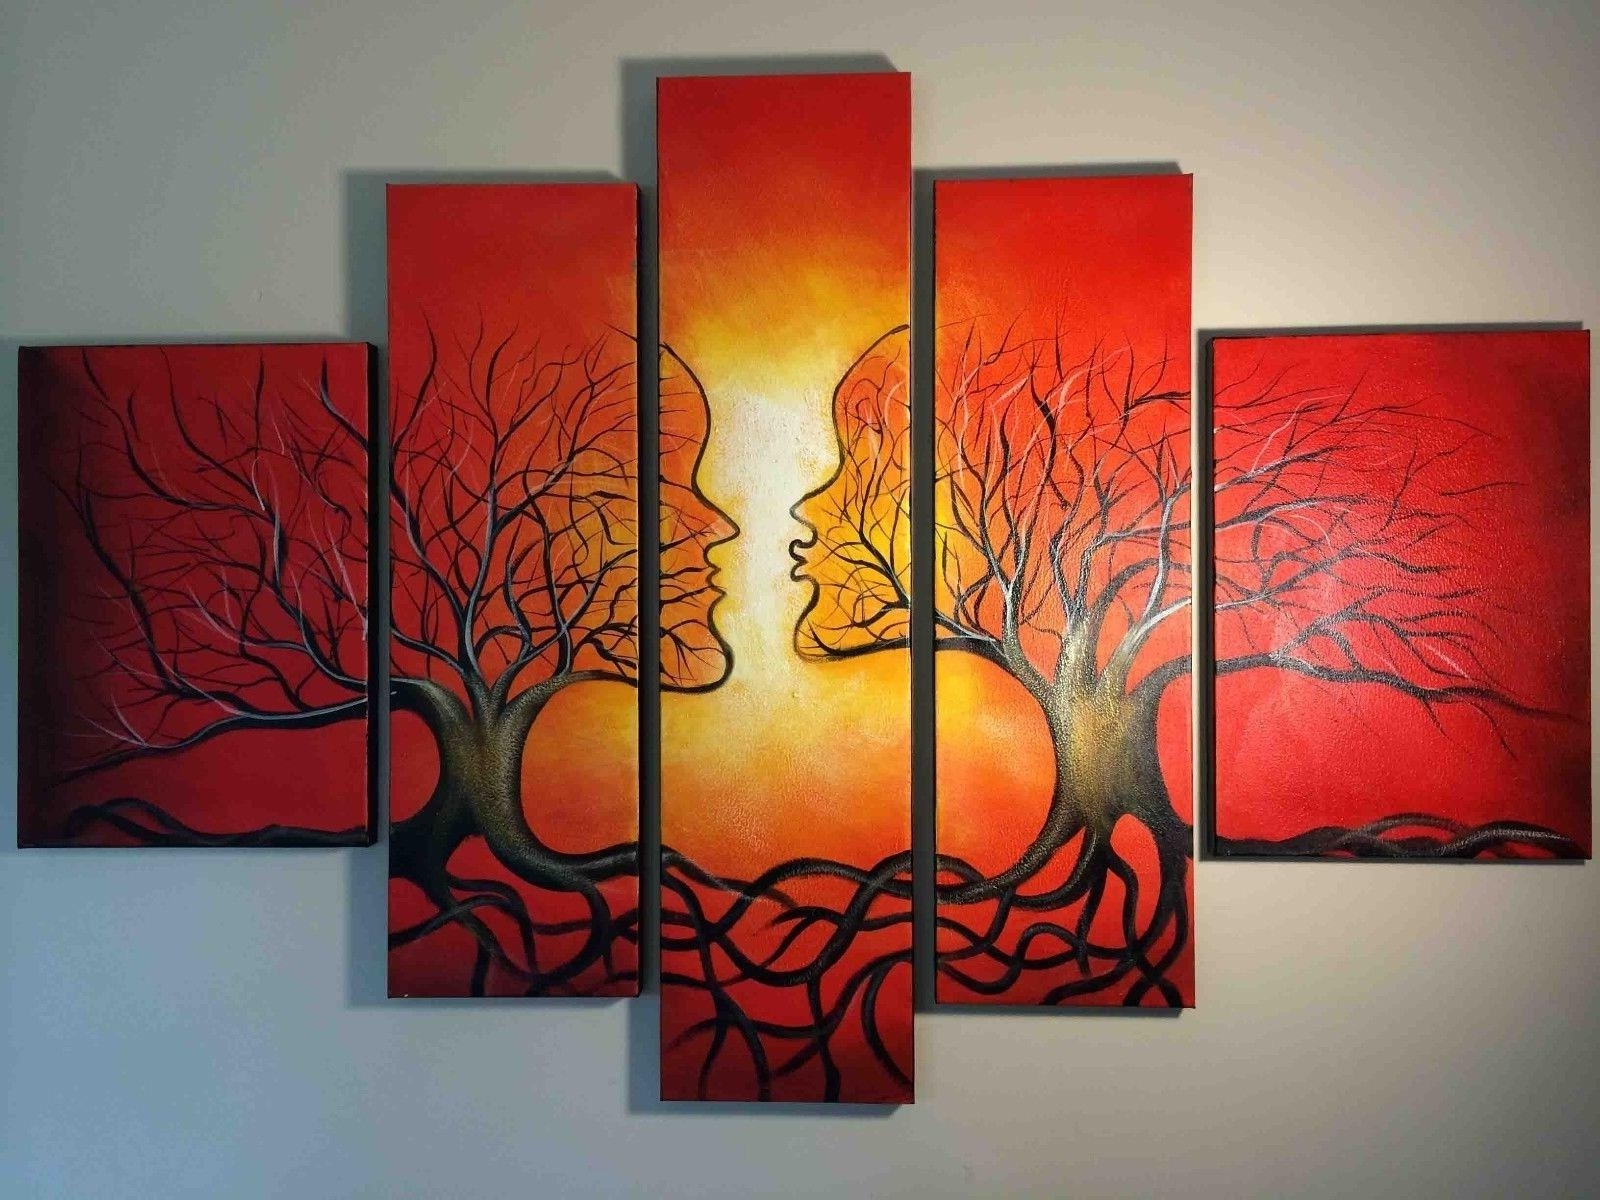 Latest Wall Art Designs: Abstract Wall Art Red Abstract Oil Painting Throughout Abstract Orange Wall Art (View 13 of 15)